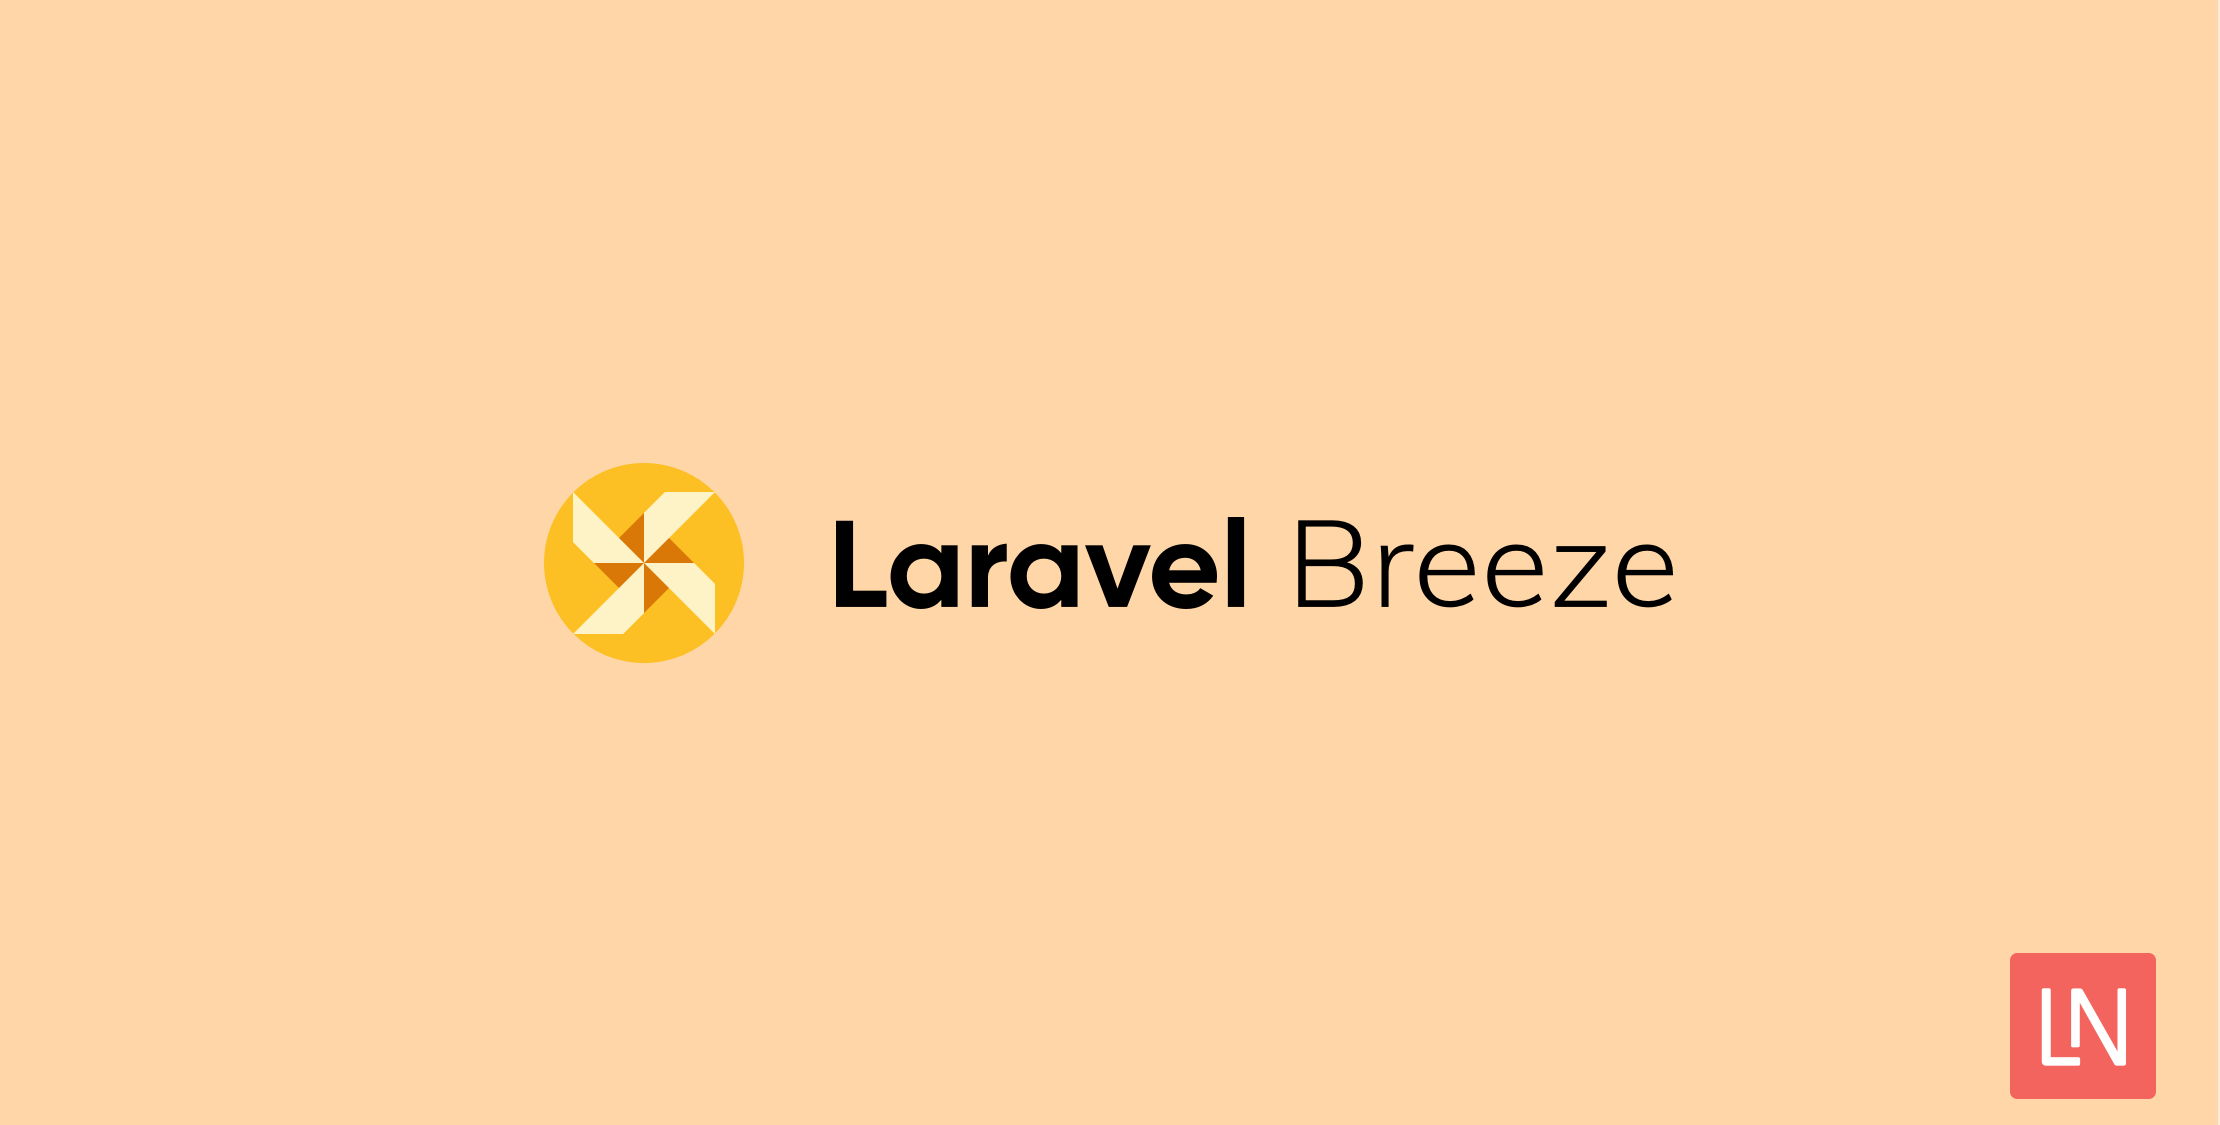 laravel-breeze-featured.png